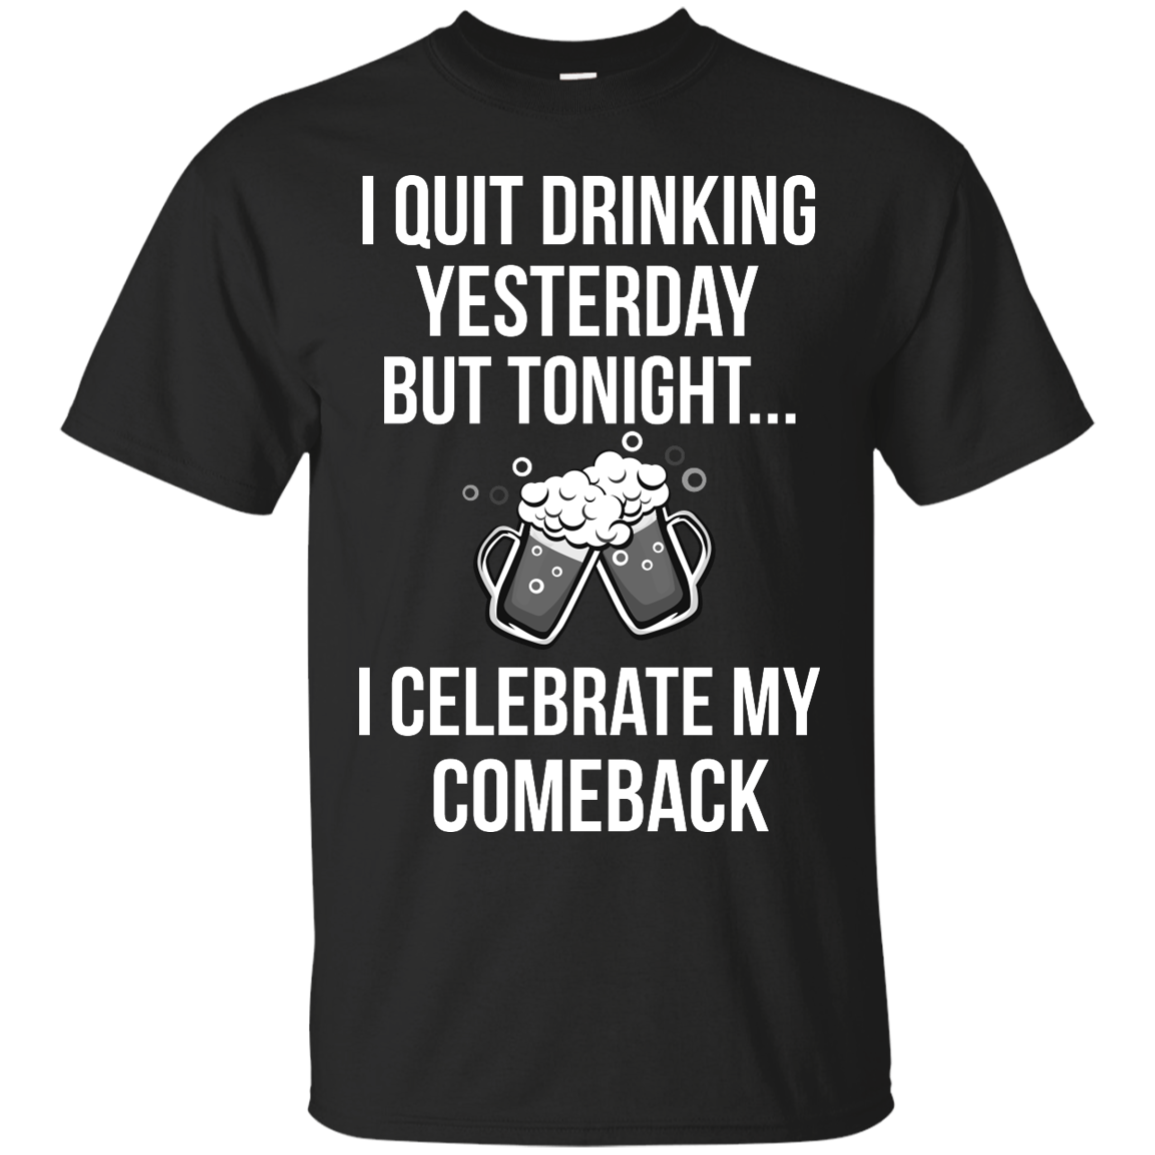 I love Beer shirt, I quit drinking yesterday but tonight i celebrate my comeback T shirt,Tank top & Hoodies